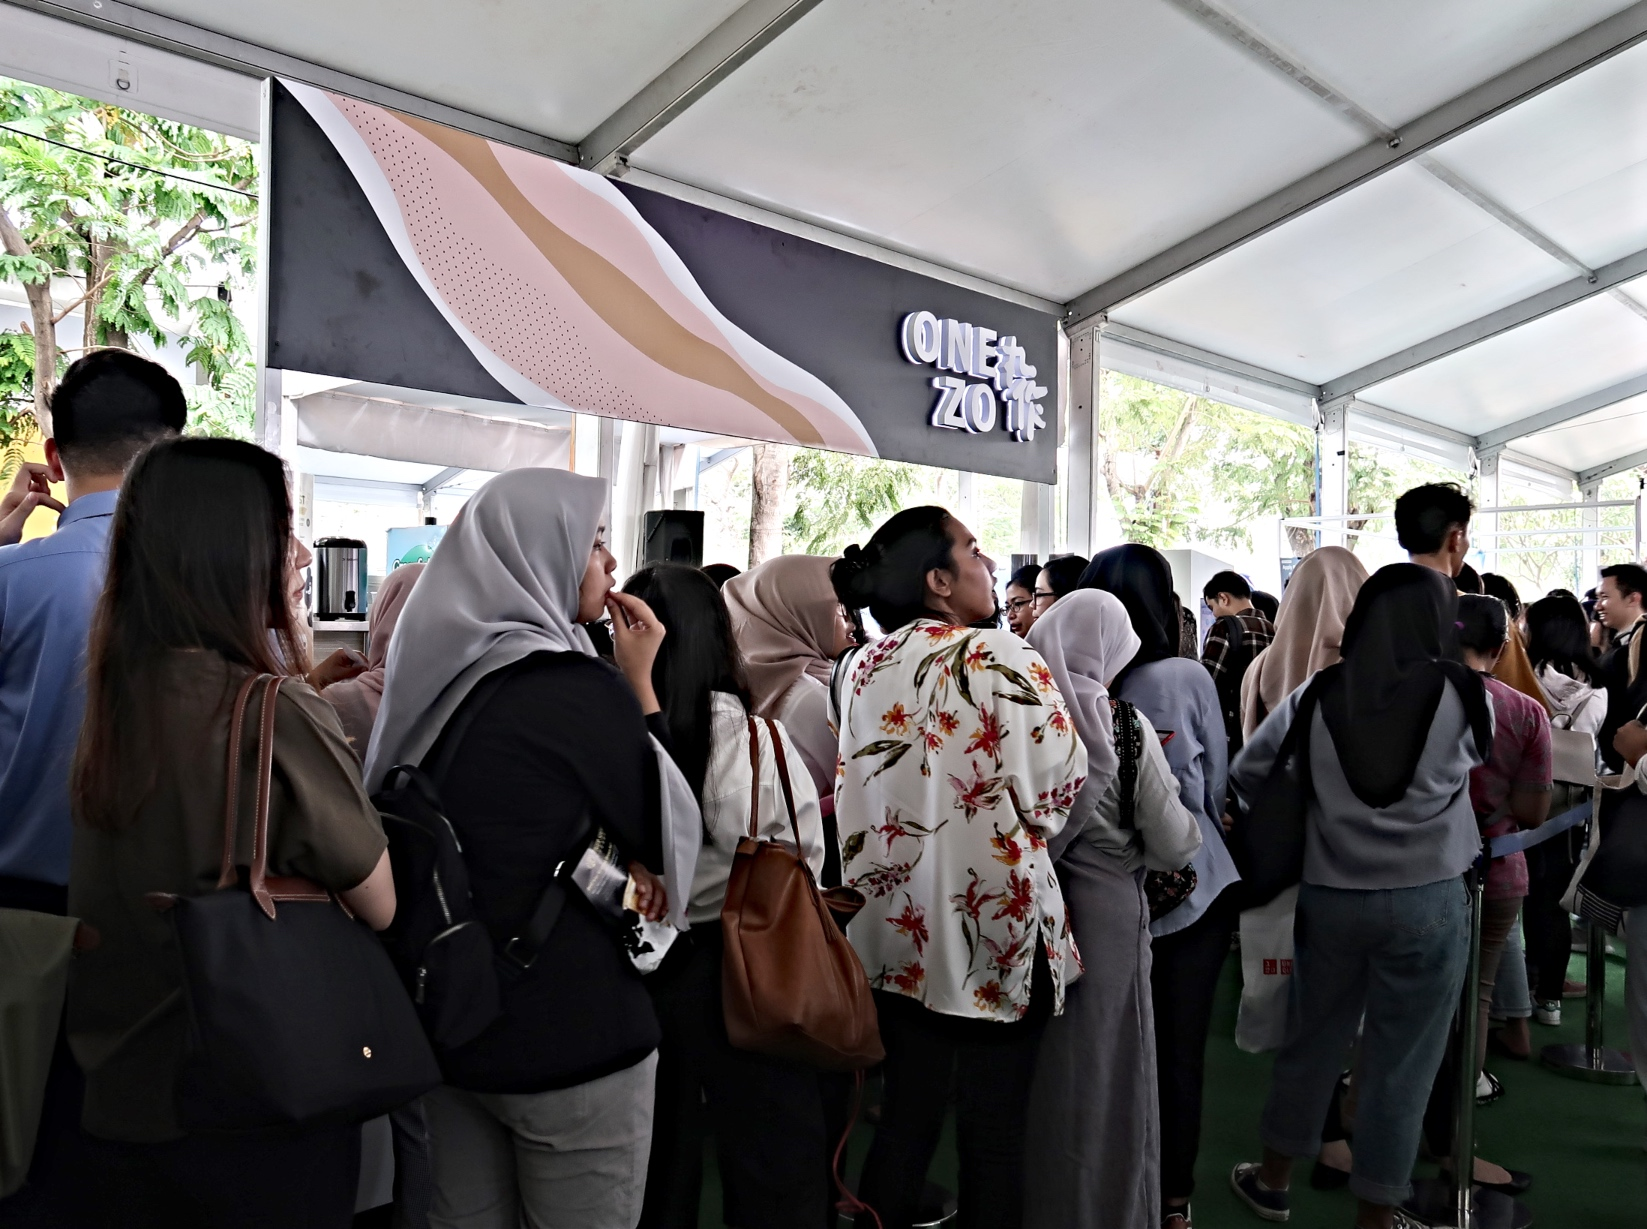 People line up for OneZo during the Boba Fest at Gandaria City shopping mall, South Jakarta.